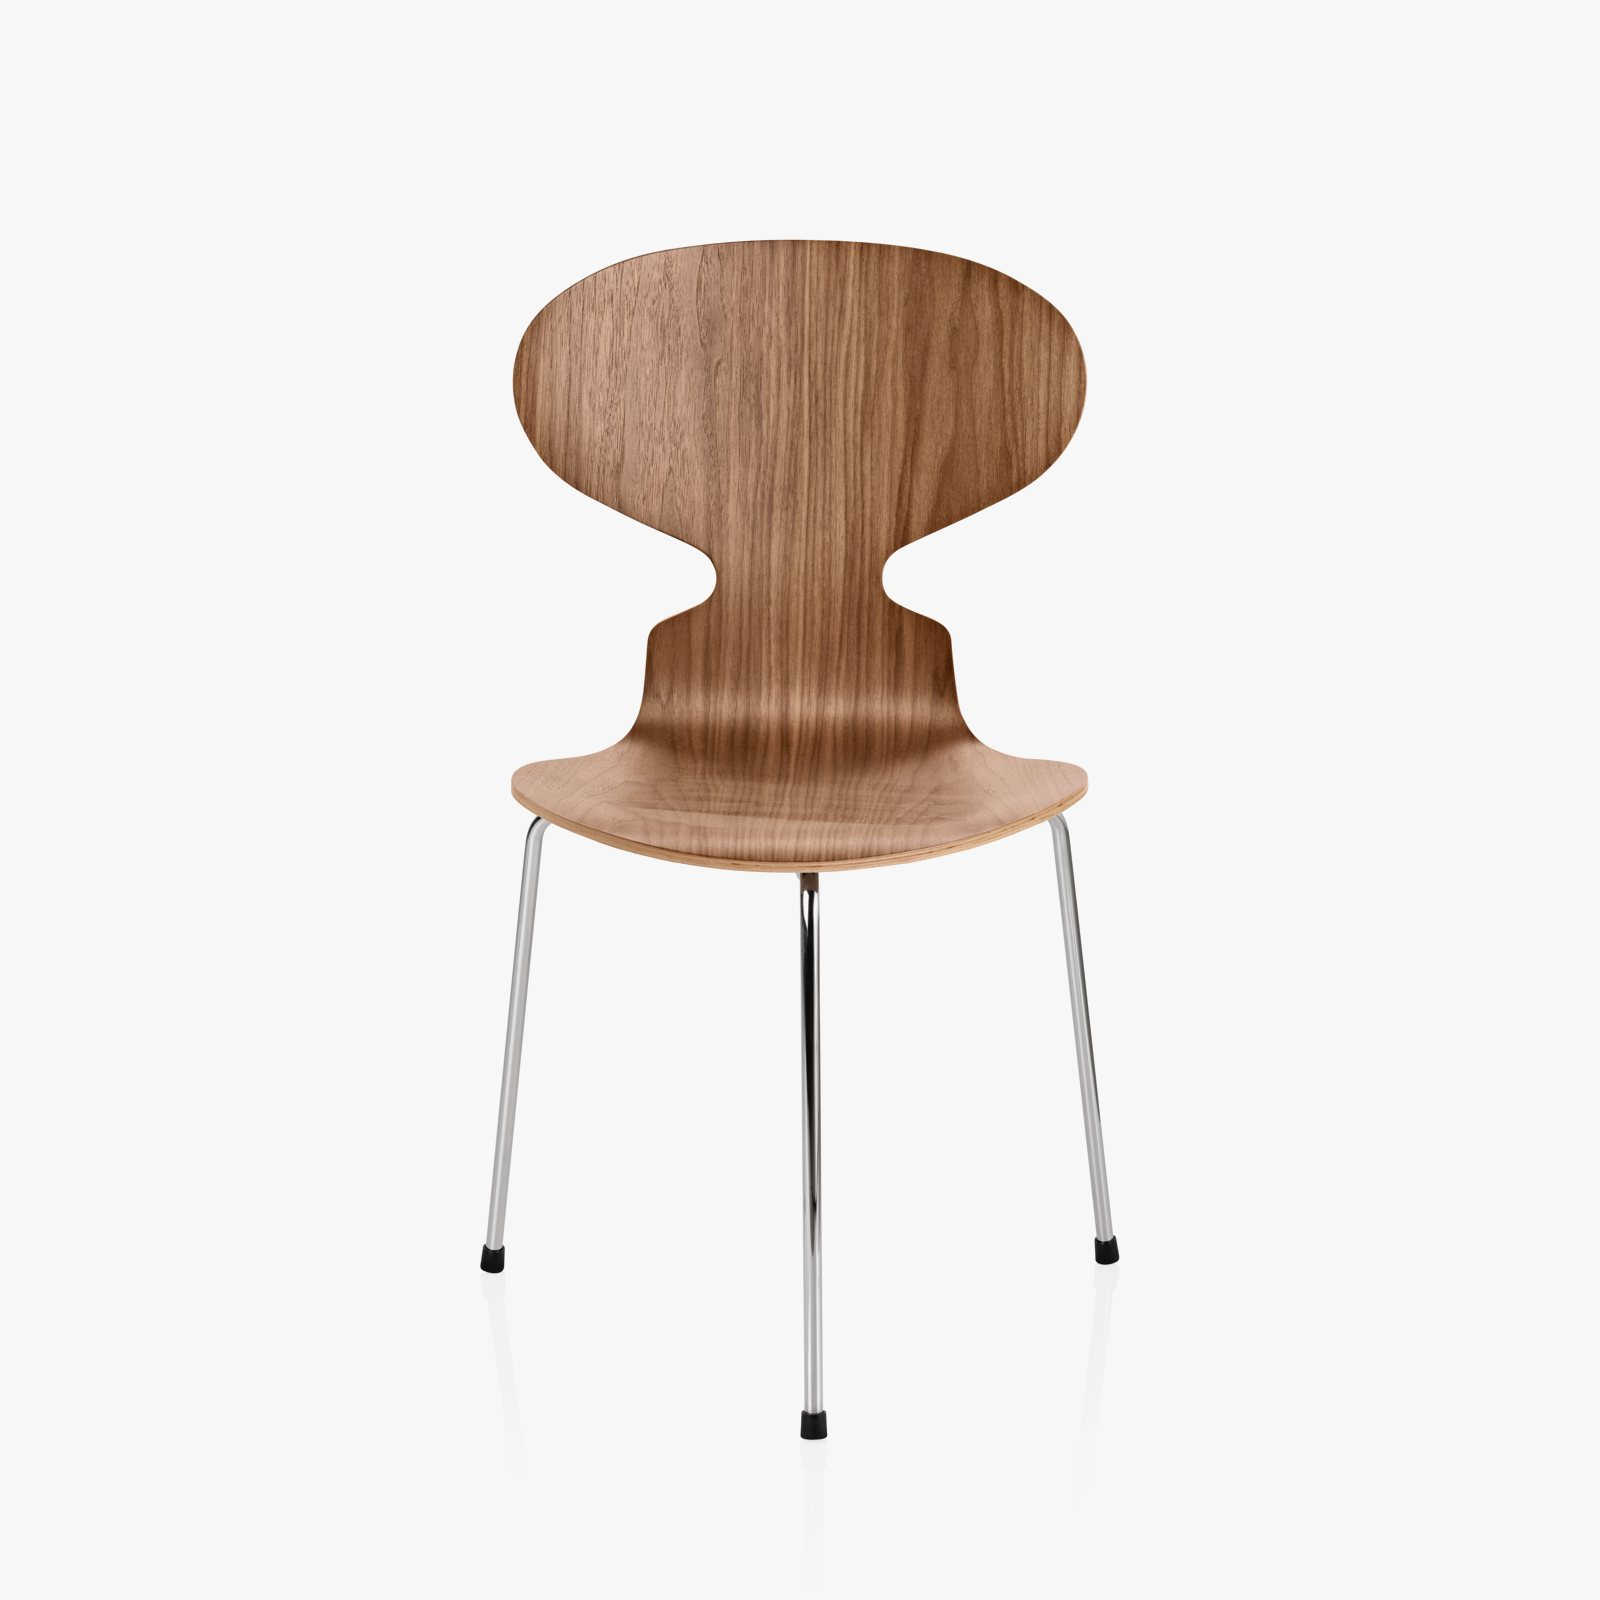 Ant Chair 3100, Clear Lacquer.